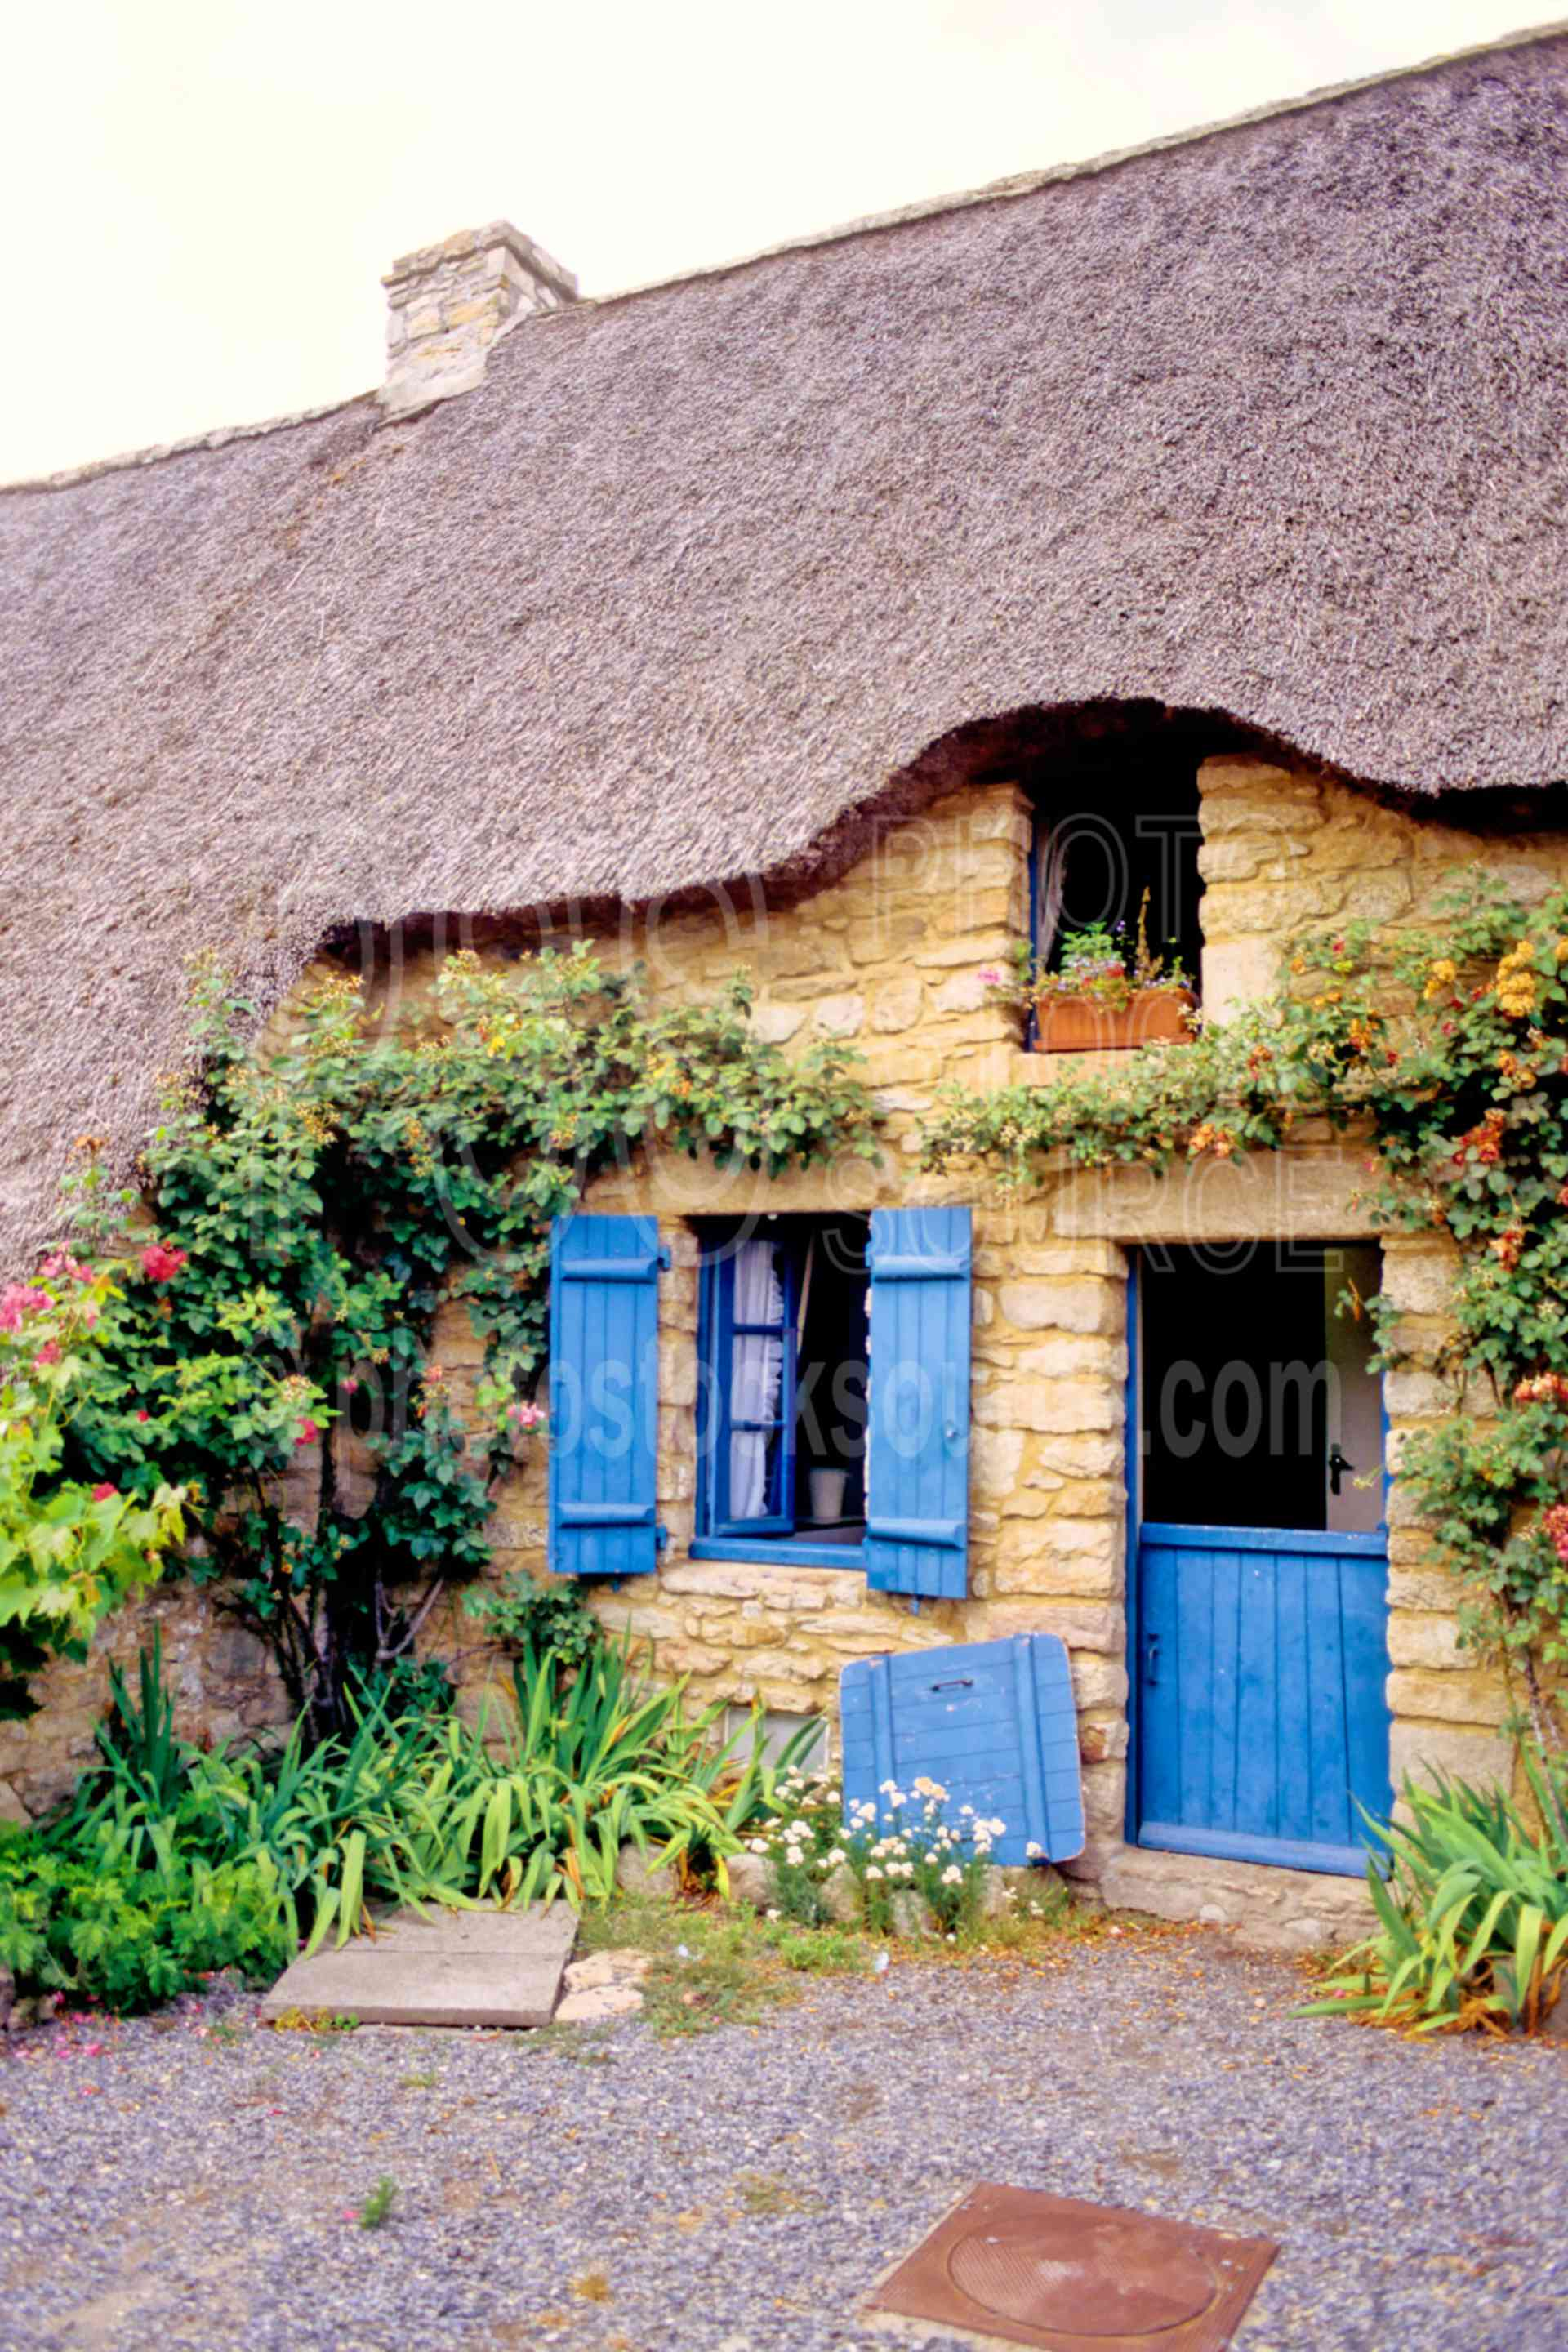 Thatched Roof House,europe,house,natural park of briere,thatched roof